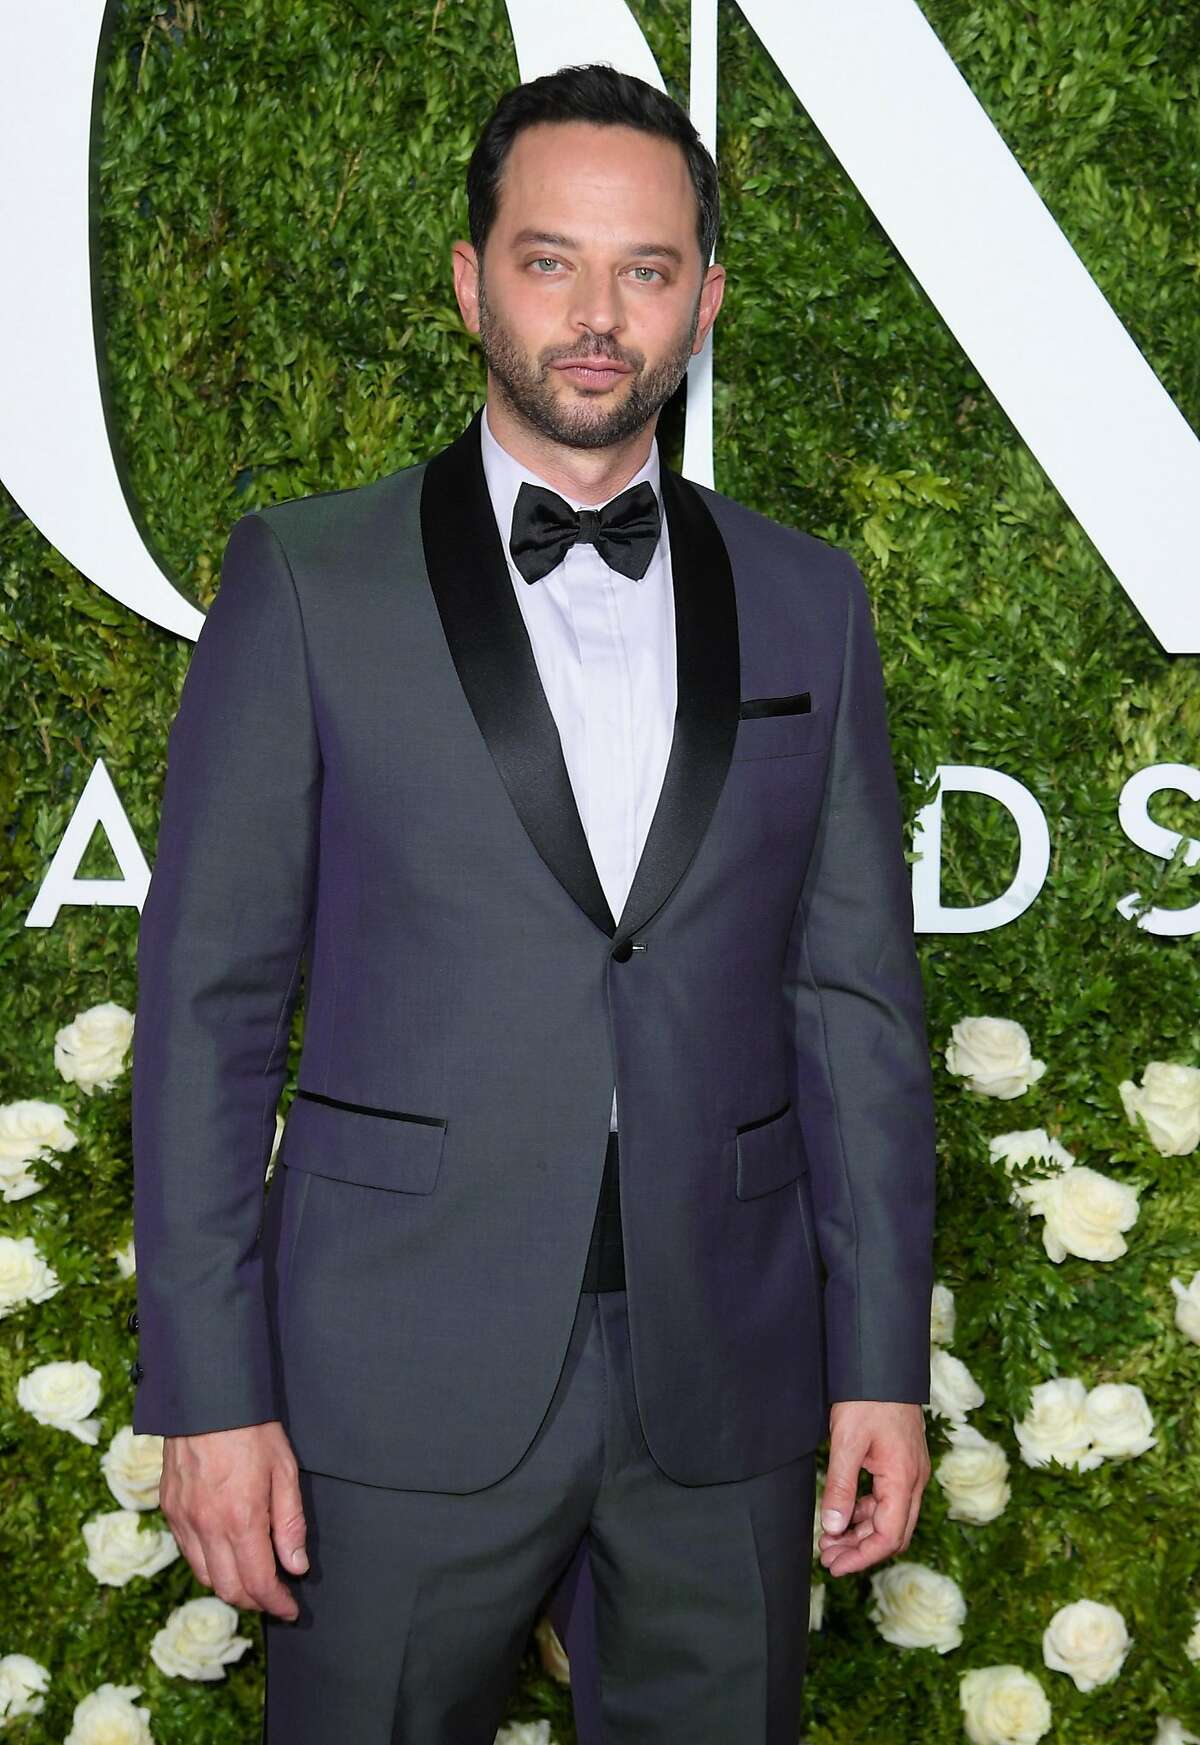 Actor/comedian Nick Kroll played Rodney Ruxin in the FX/FXX comedy series